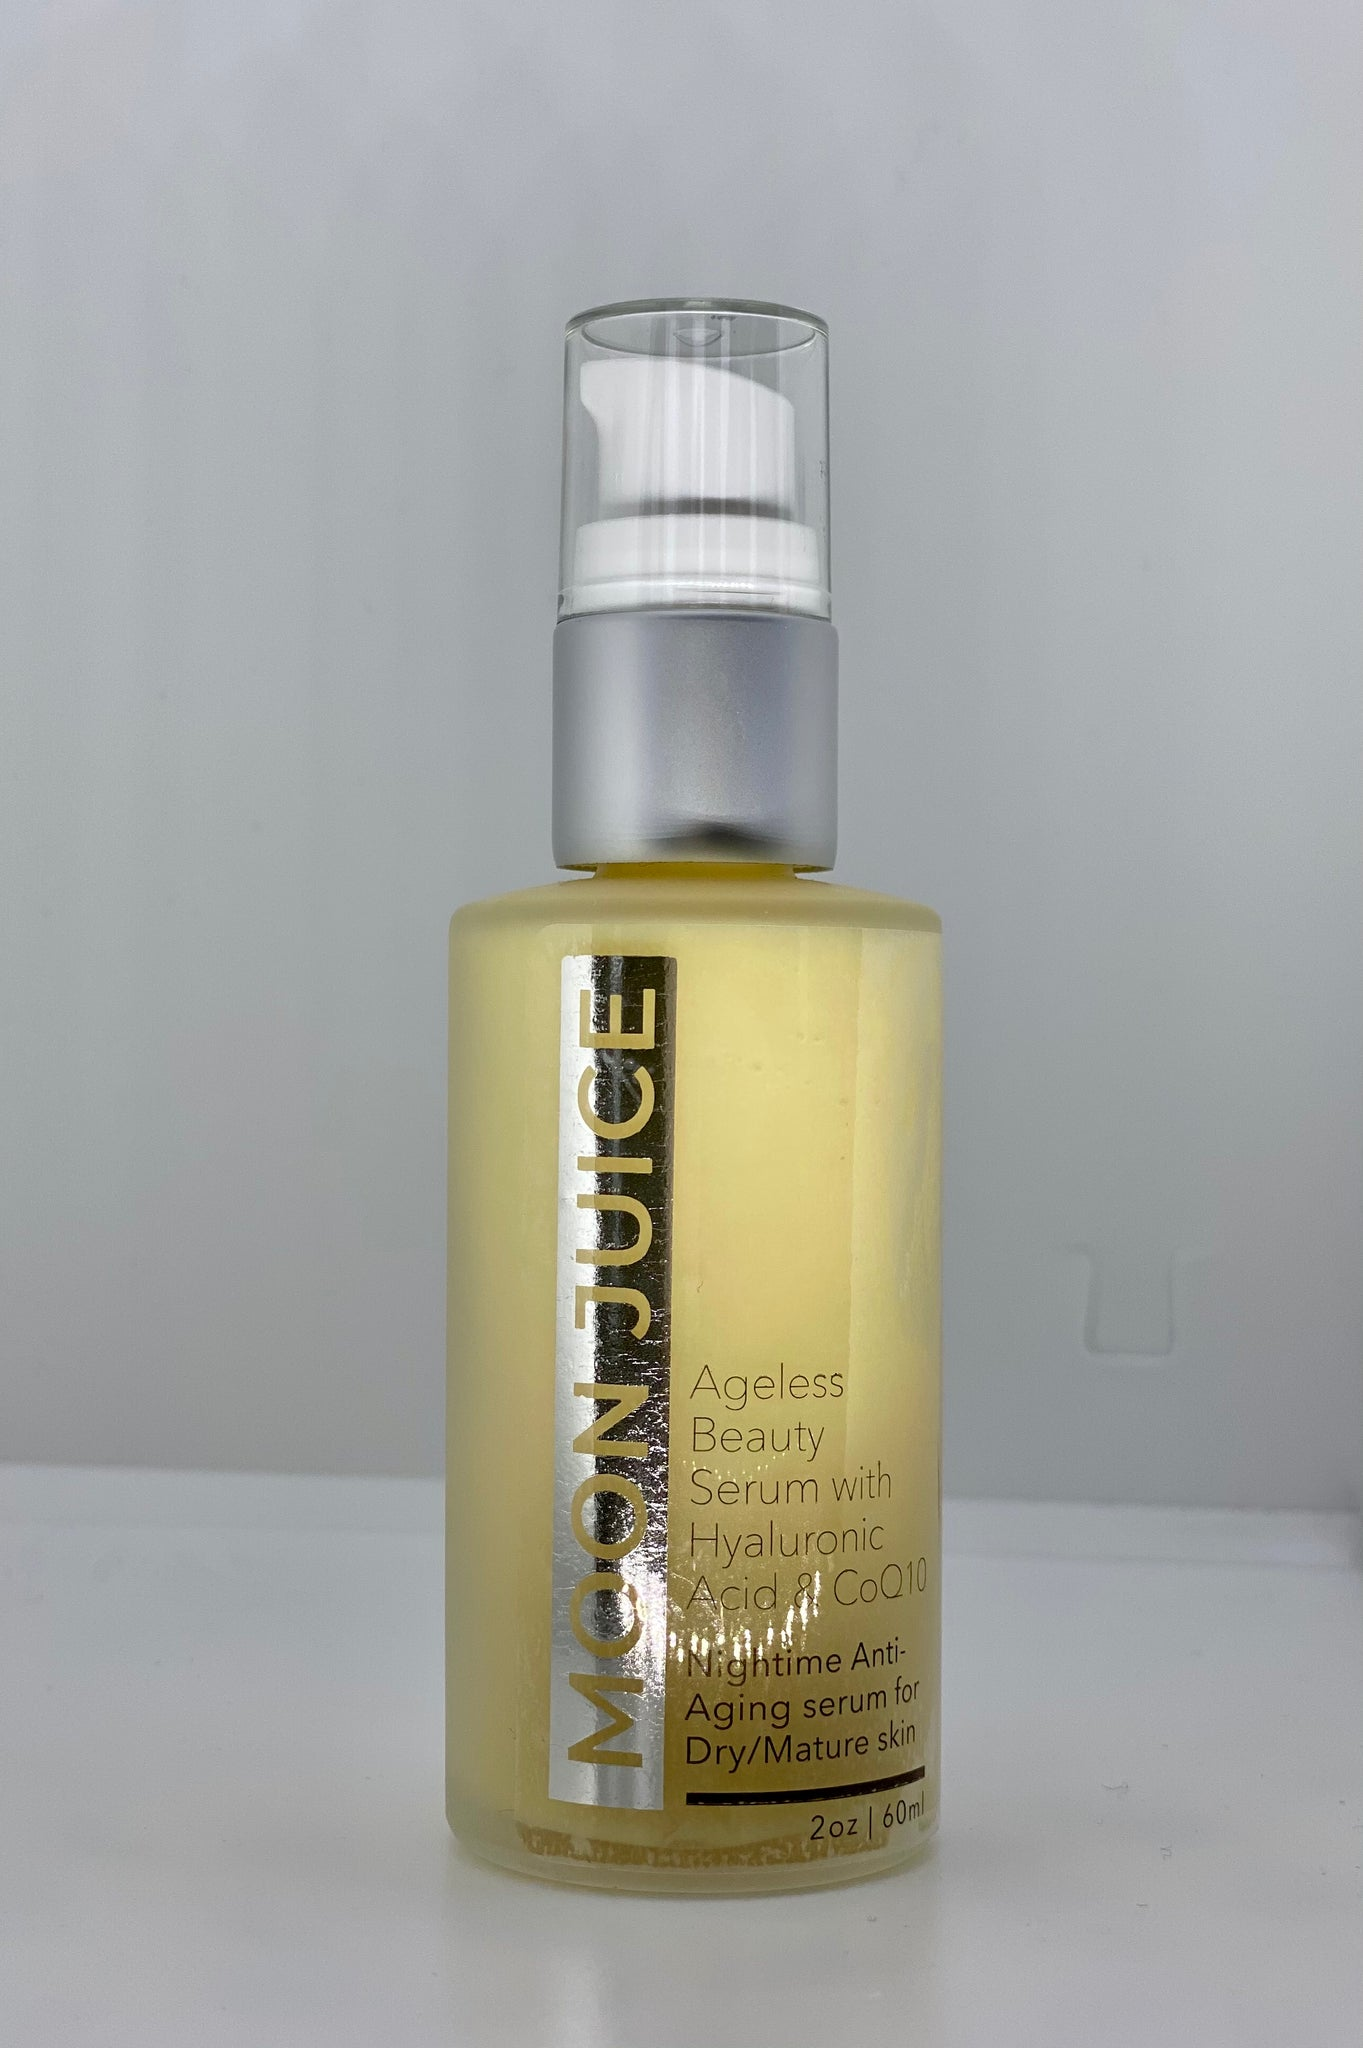 MOON JUICE Ageless Beauty night serum